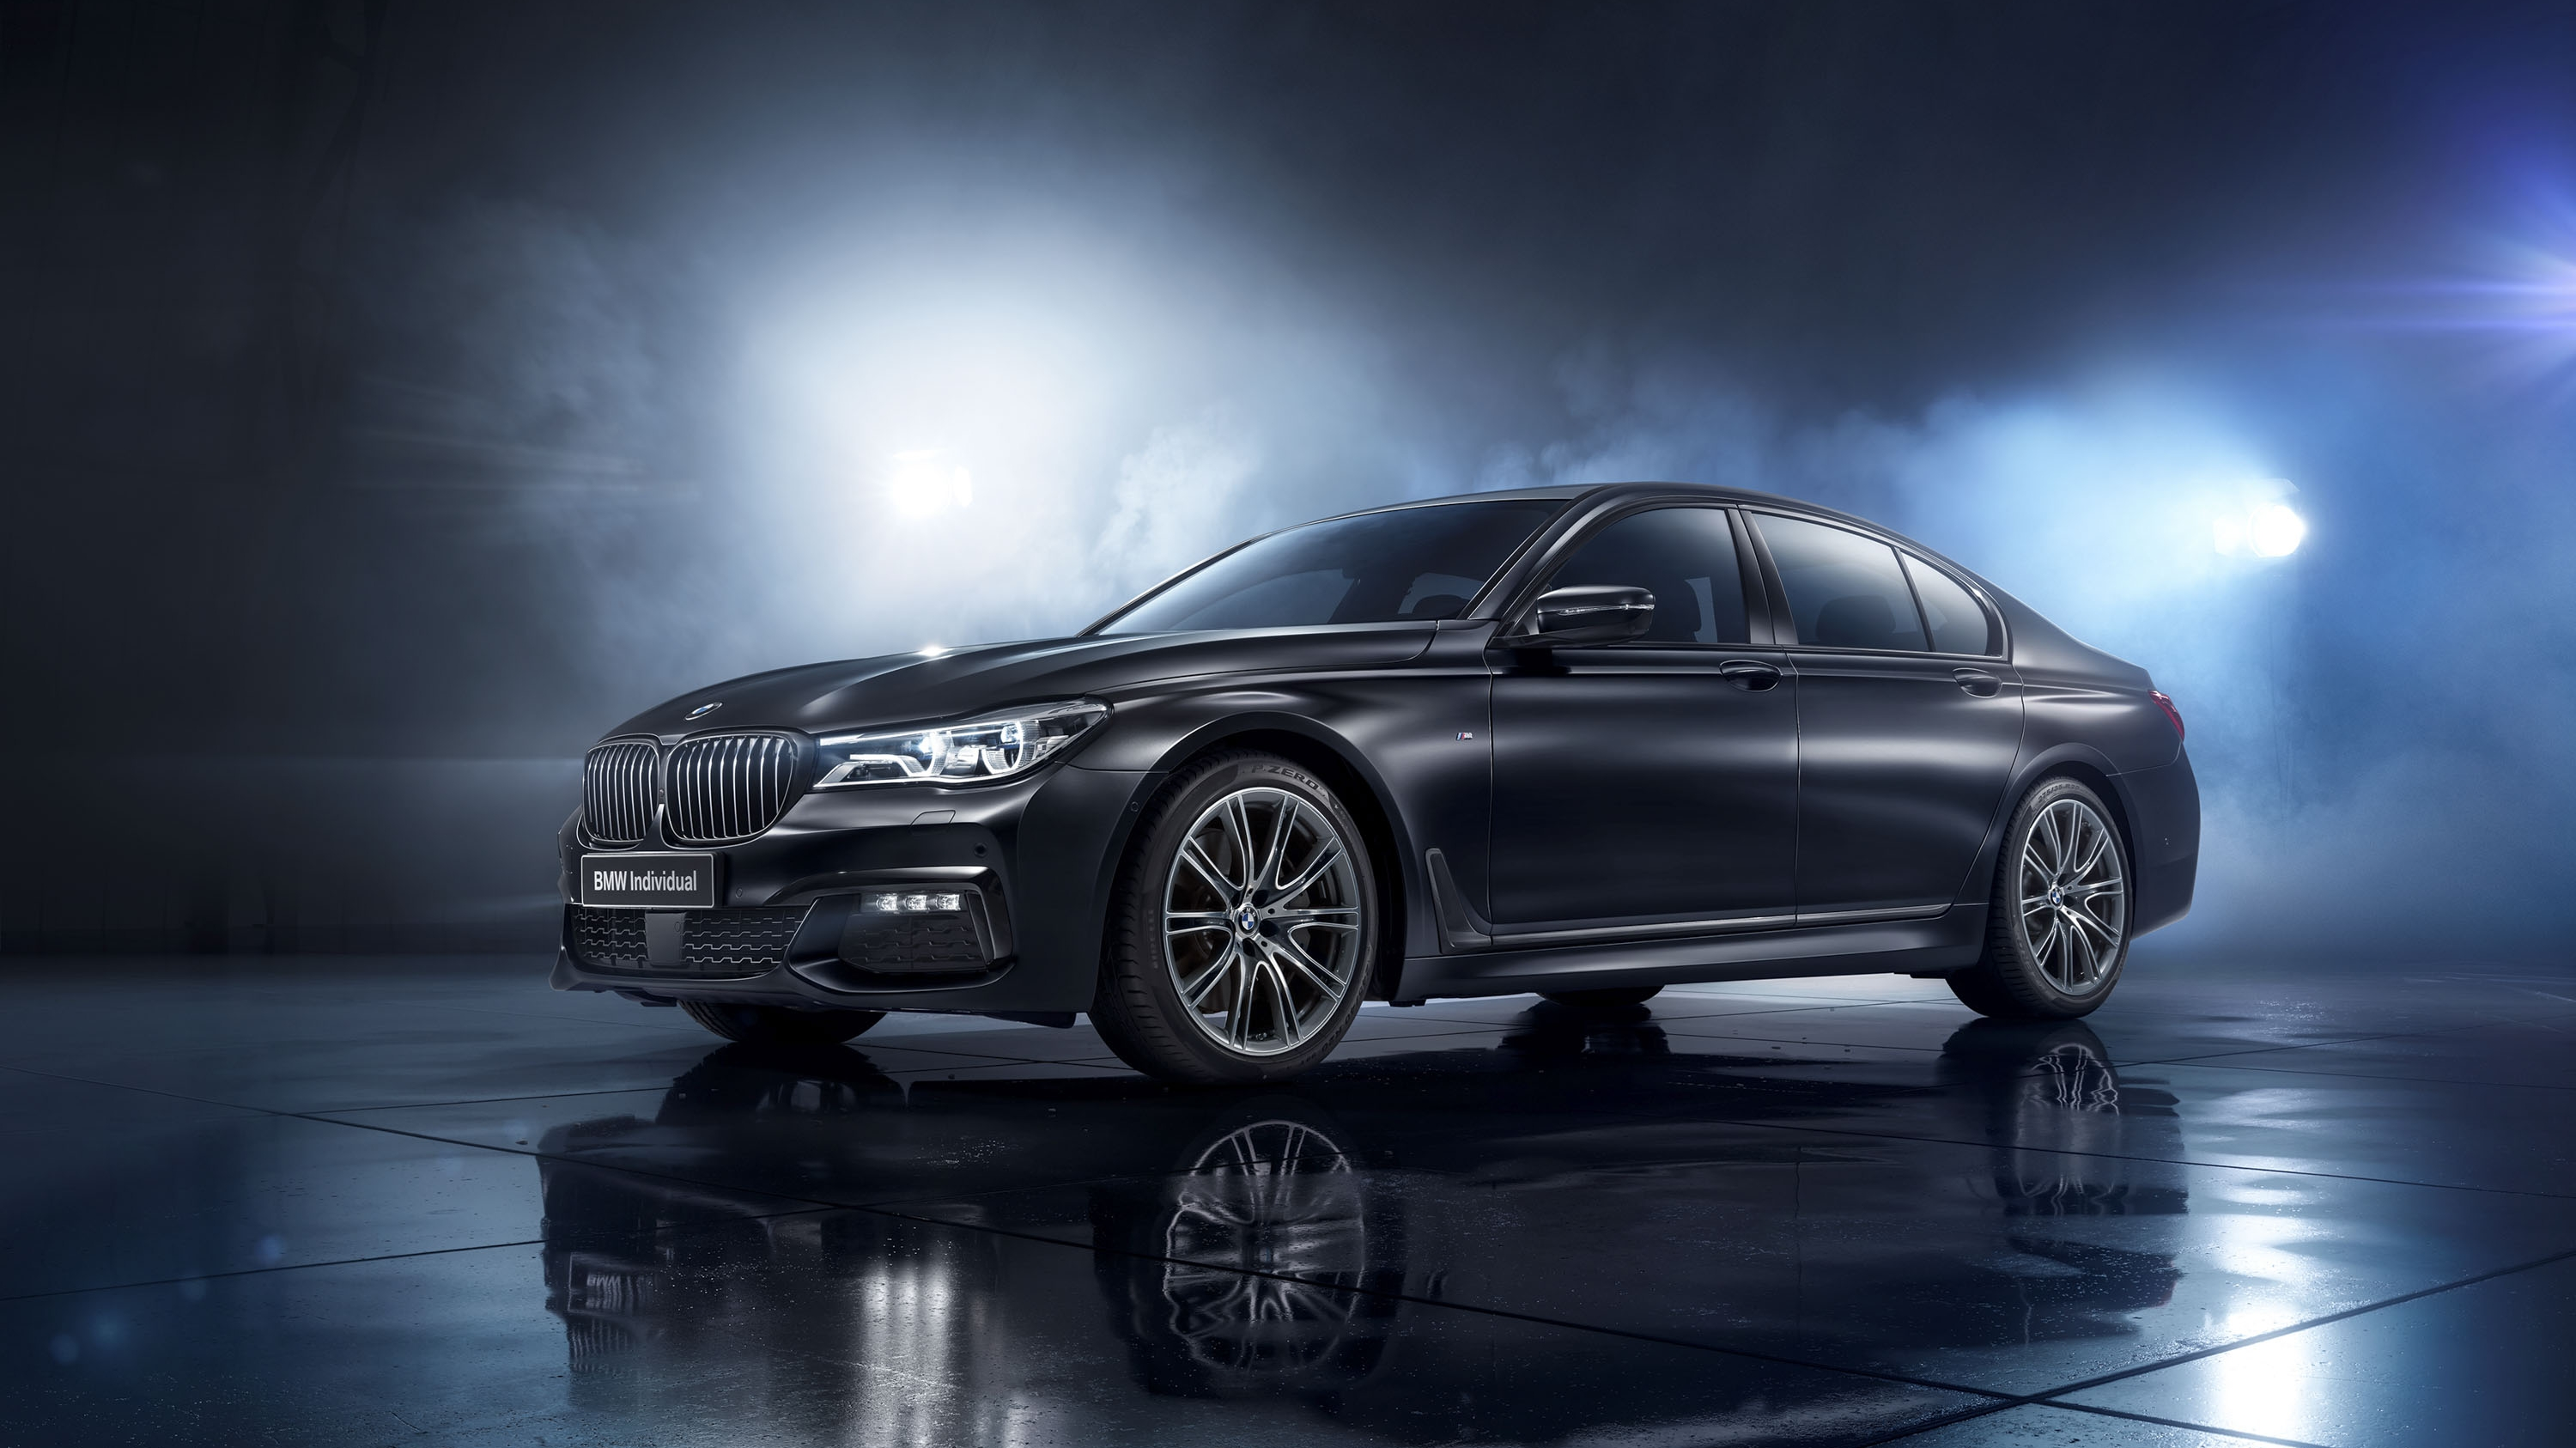 2017 BMW 7 Series Individual Black Ice Edition Pictures ...